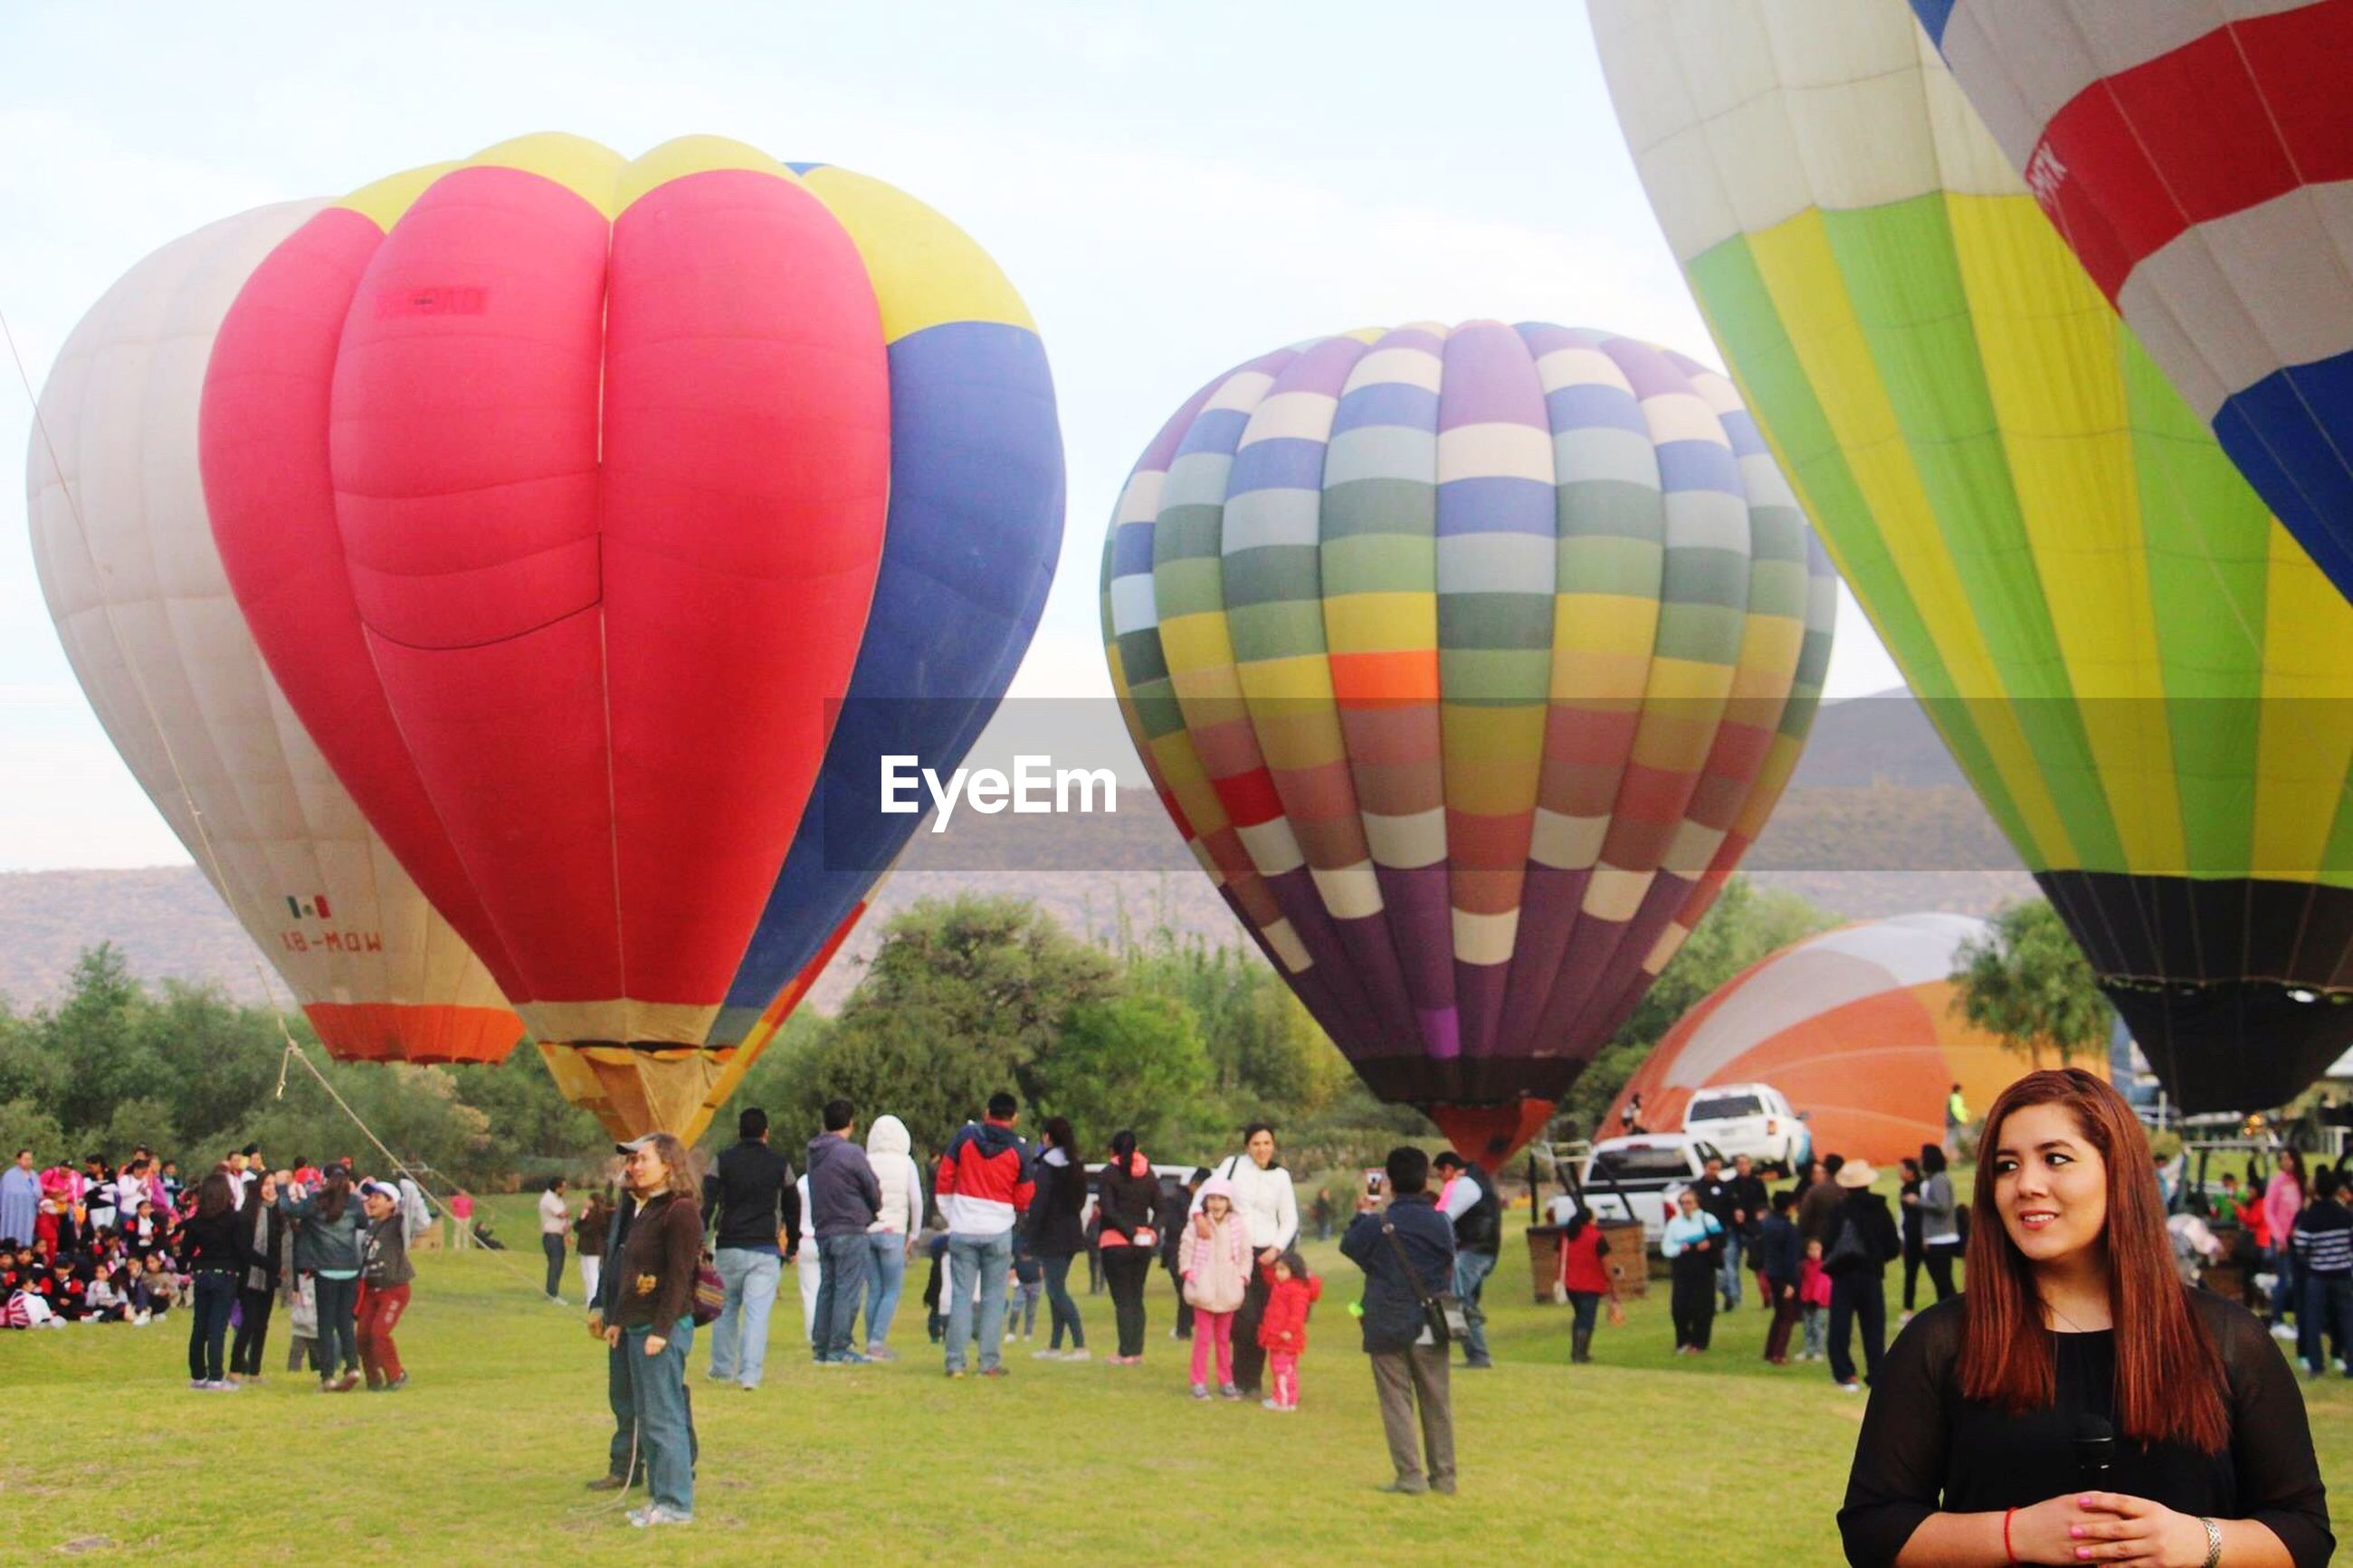 leisure activity, large group of people, lifestyles, hot air balloon, men, sport, multi colored, transportation, person, mid-air, flying, sky, travel, umbrella, parachute, adventure, tourist, tent, enjoyment